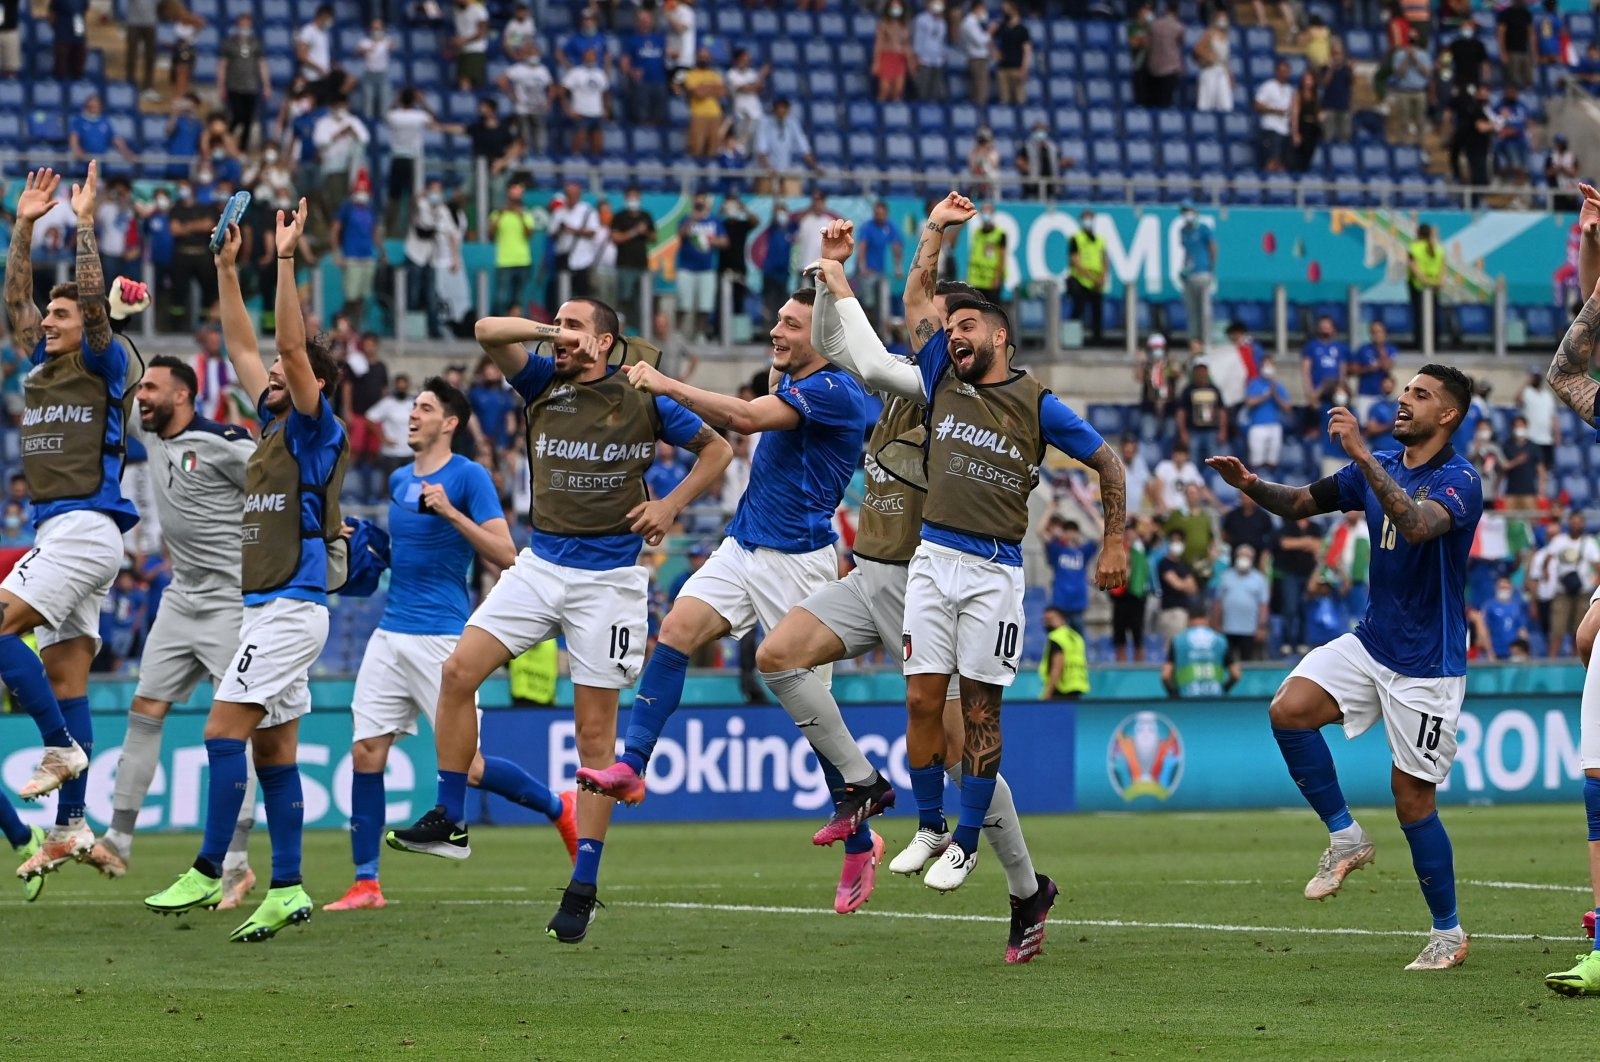 Italy celebrate with fans after the match against Wales in Stadio Olimpico, Rome, Italy, June 20, 2021. (Reuters Photo)